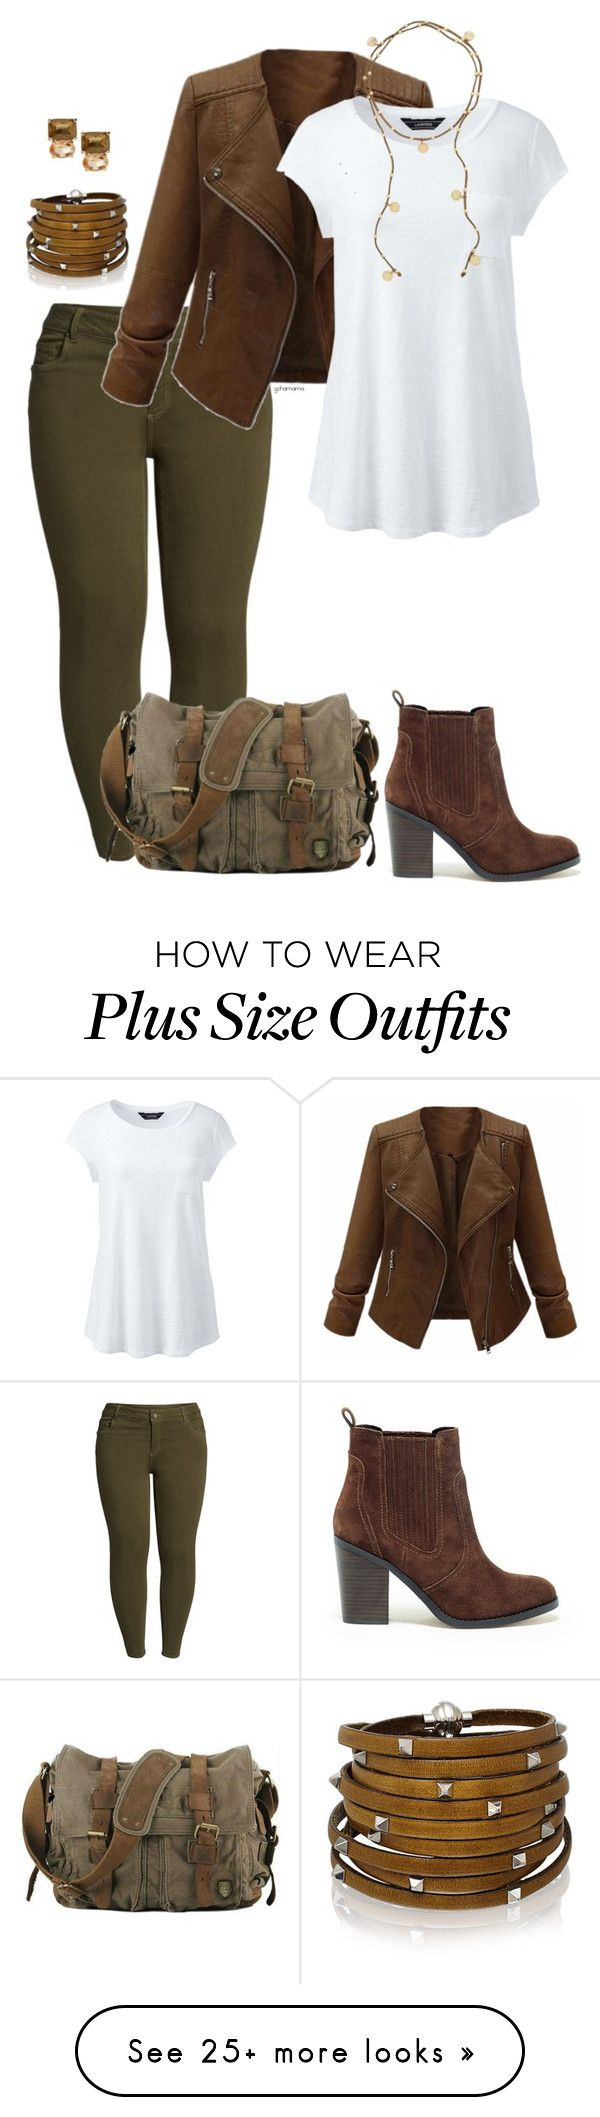 """""""Easy day- plus size"""" by gchamama on Polyvore featuring KUT from the Kloth, Lands' End, Sif Jakobs Jewellery, Sole Society, White House Black Market and plus size clothing"""